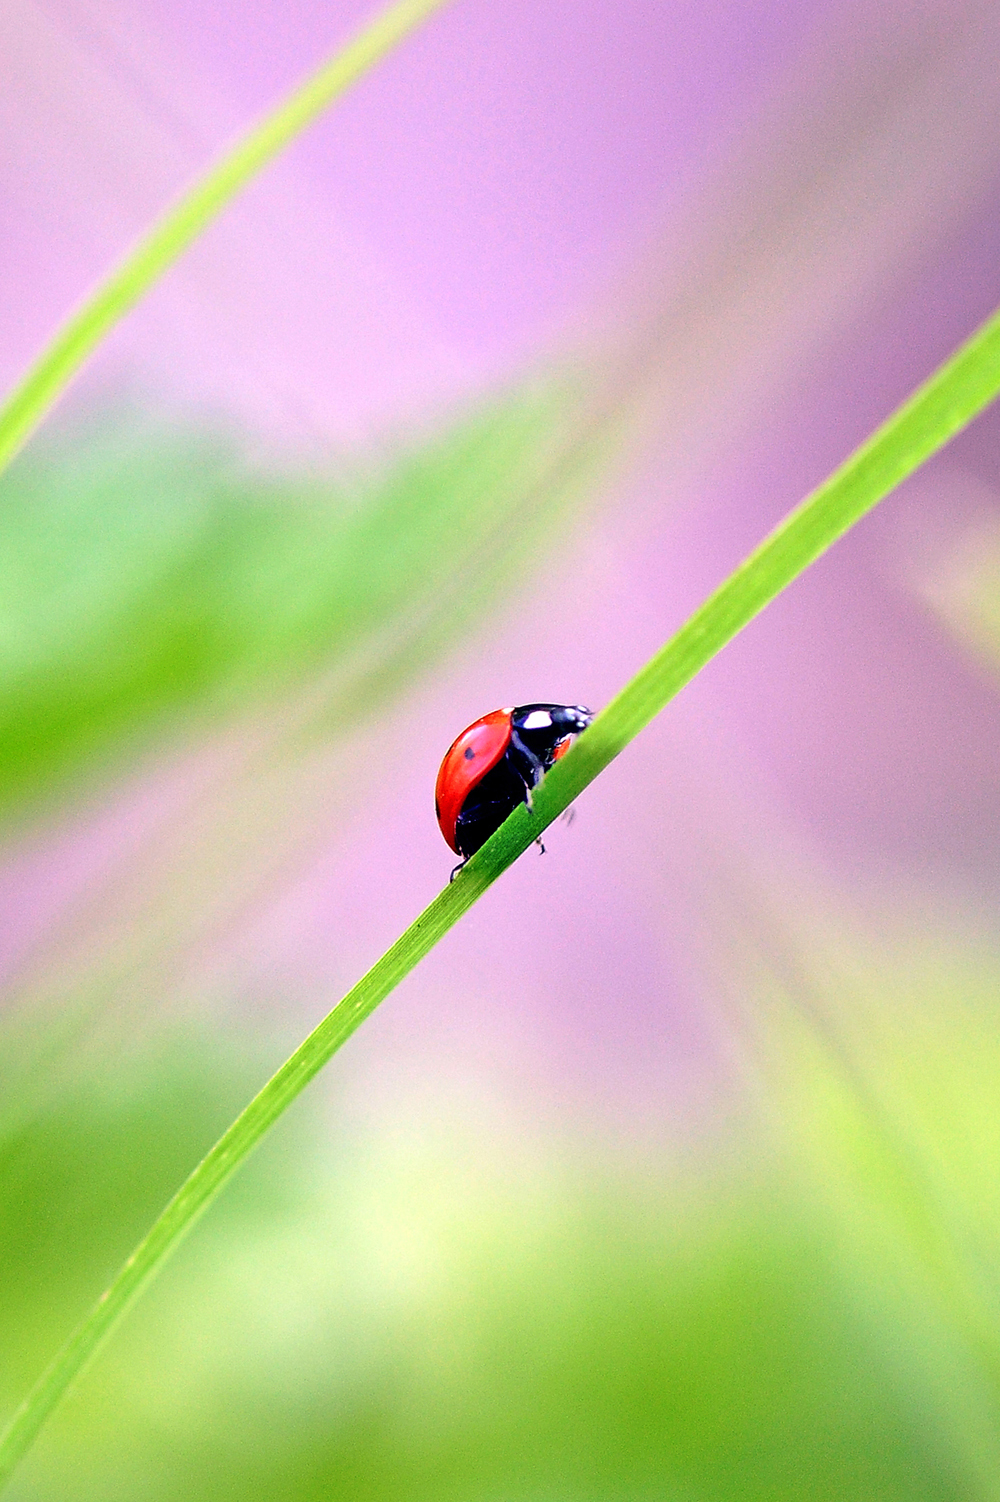 The hungry ladybug   2